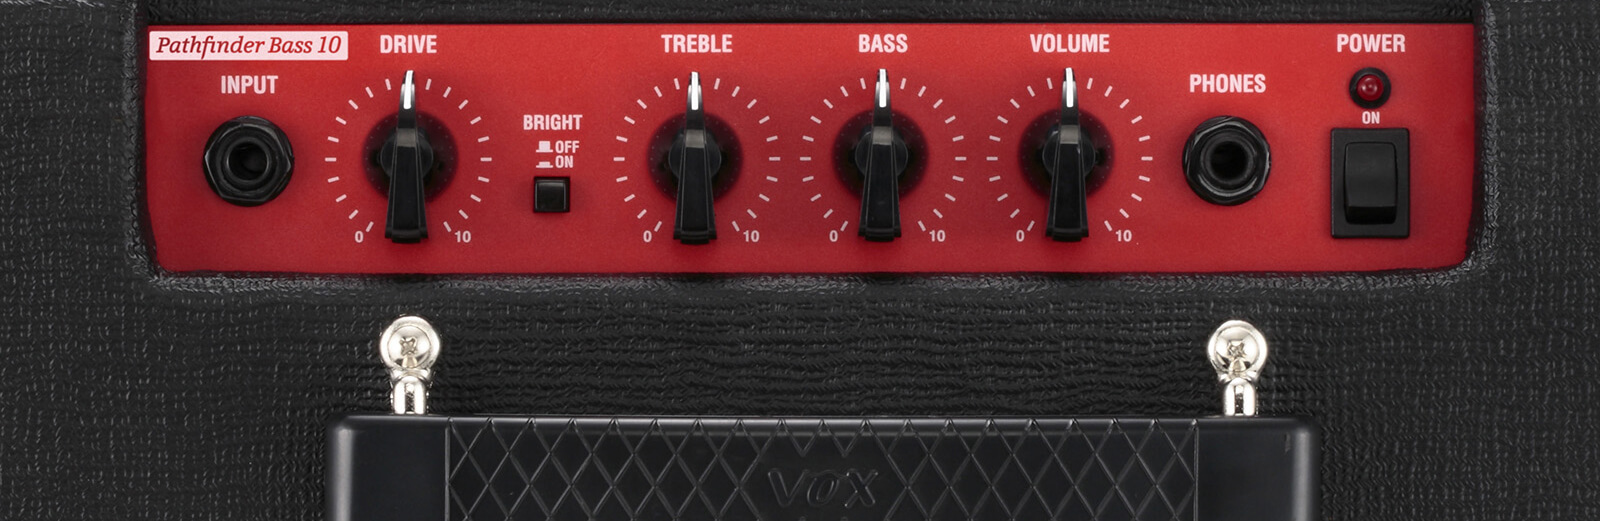 Closeup of red controls on VOX Pathfinder Bass 10